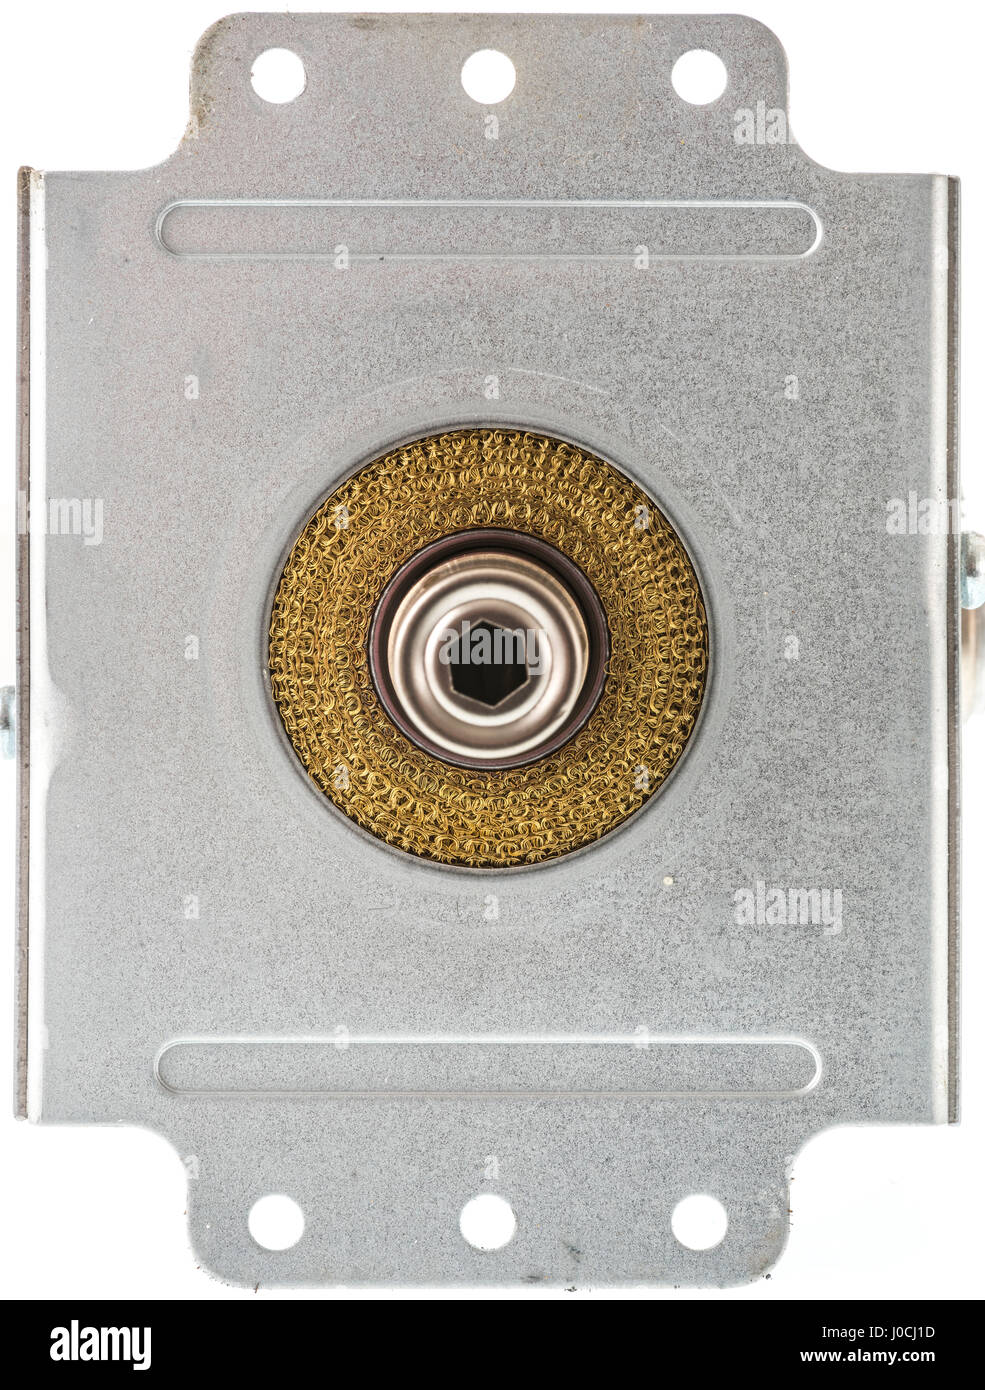 A Magnetron from a microwave oven. - Stock Image